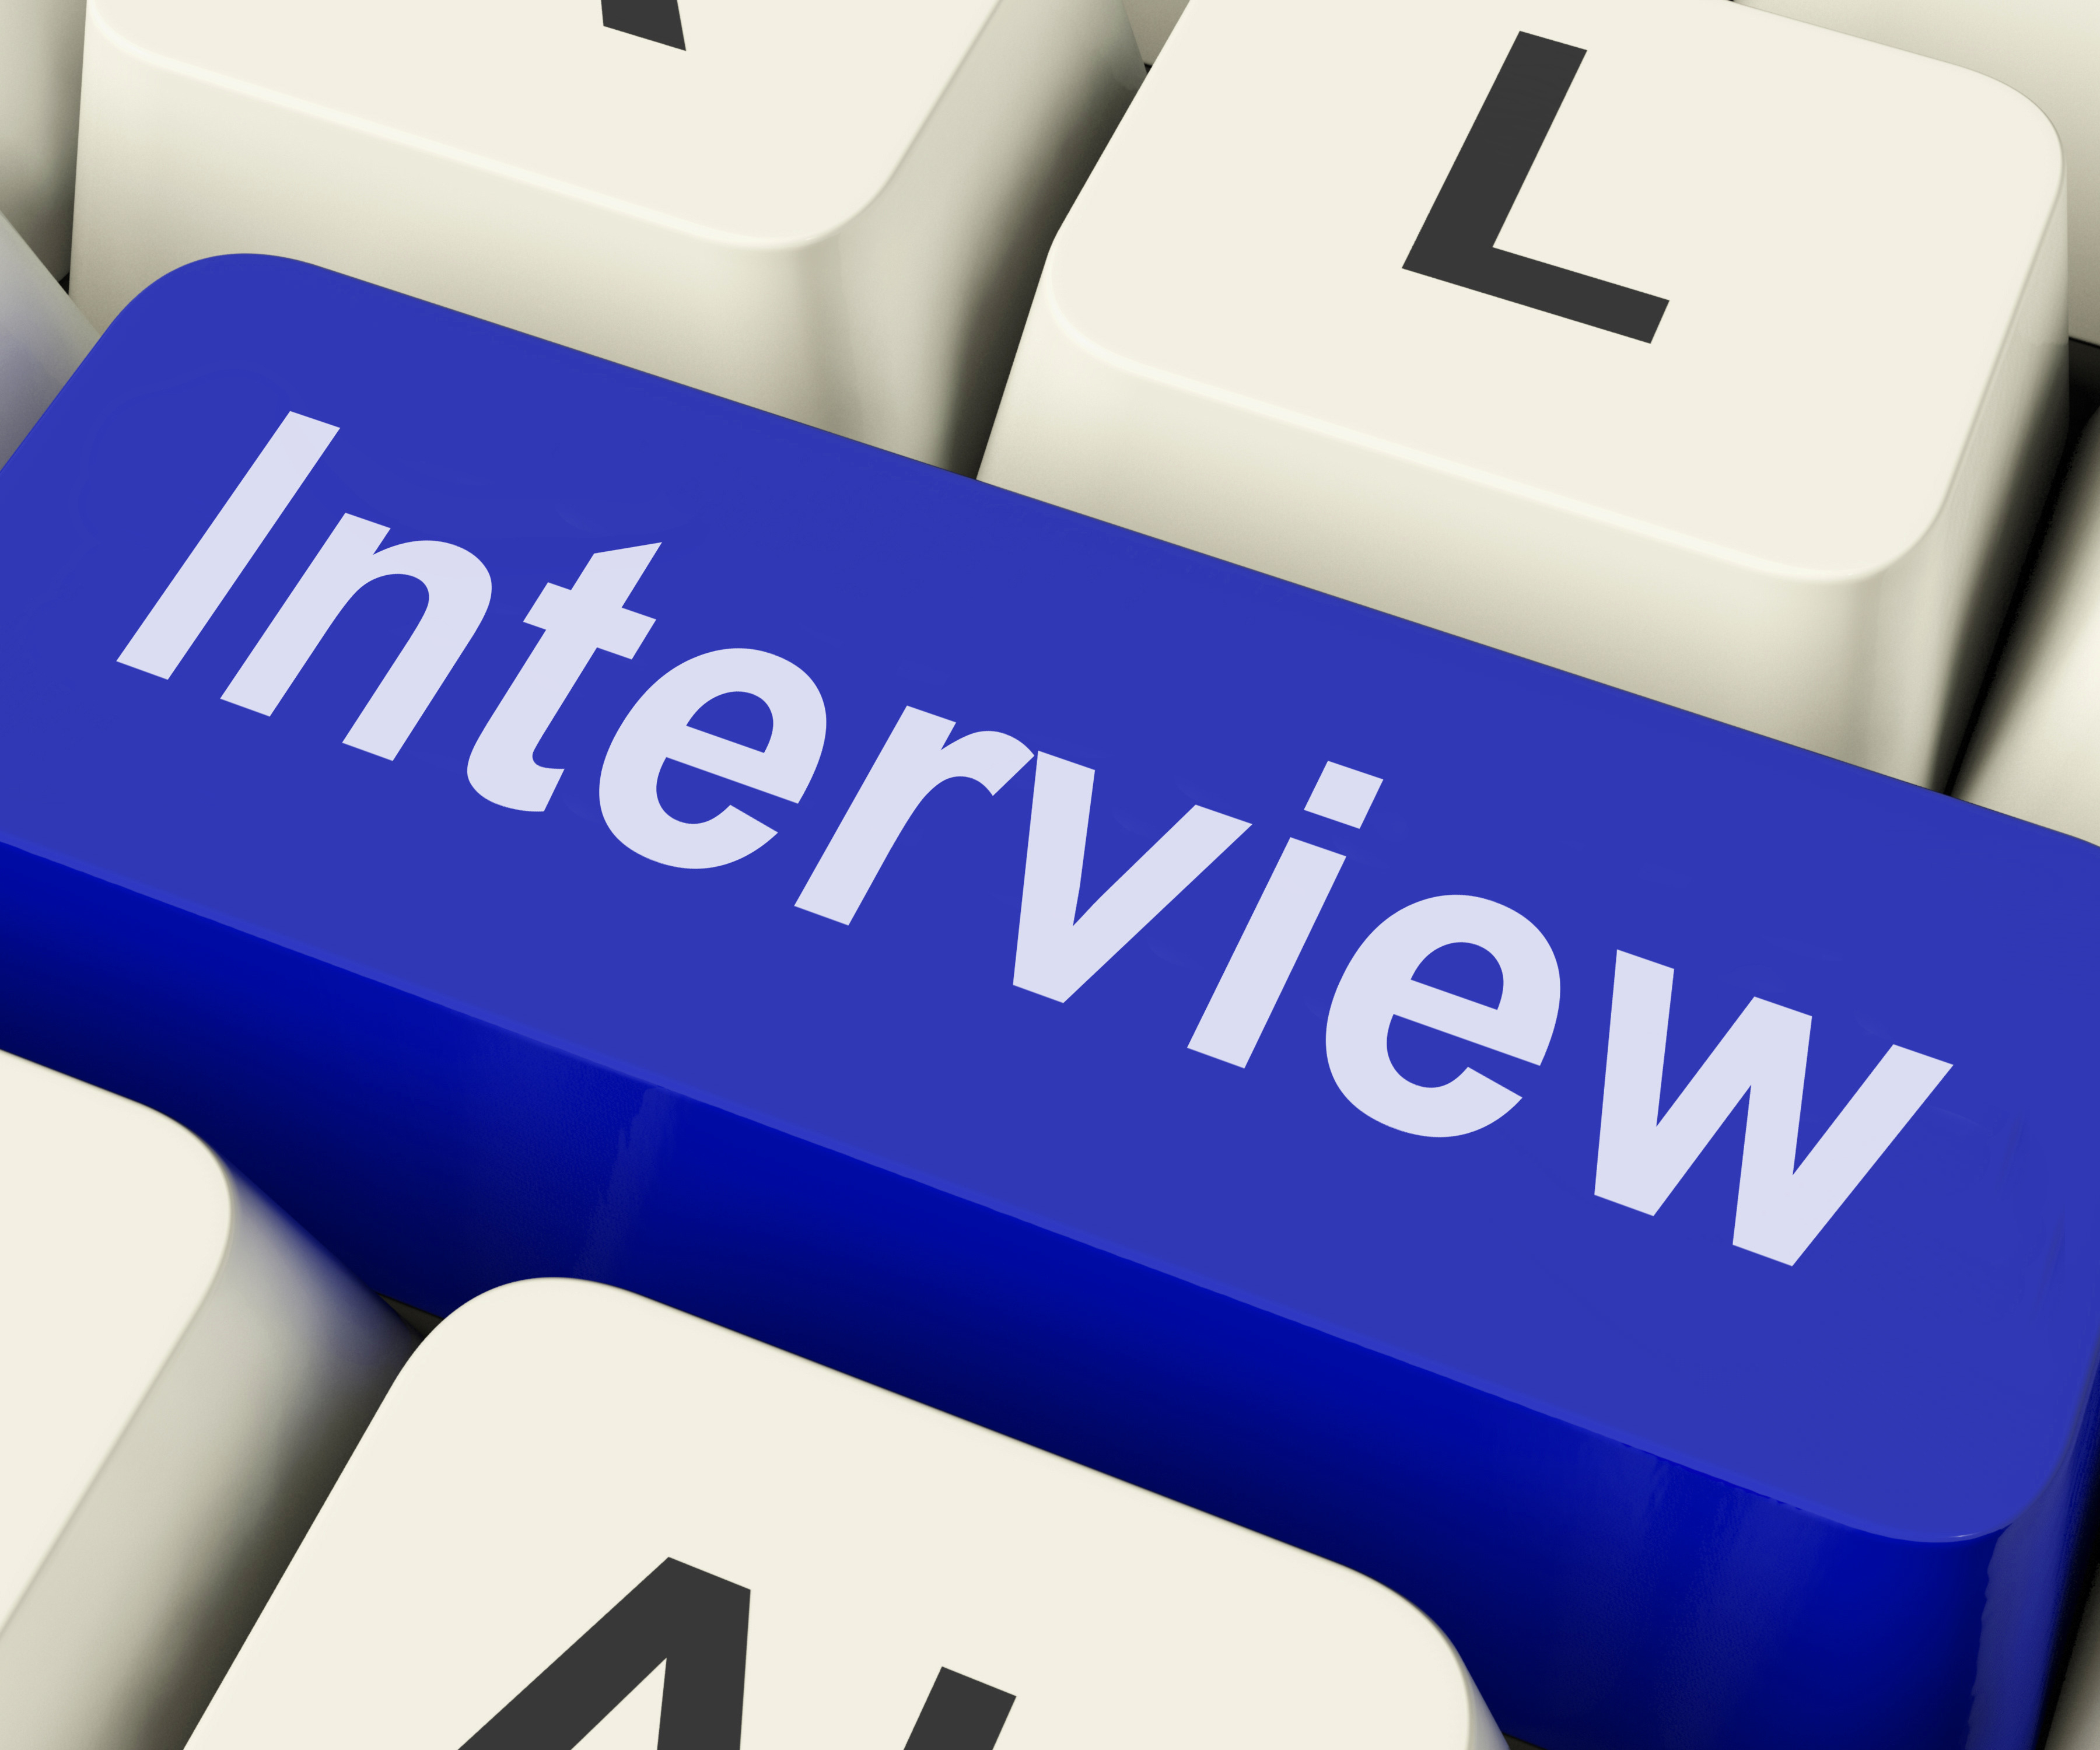 Interview Key Shows Interviewing Interviews Or Interviewer